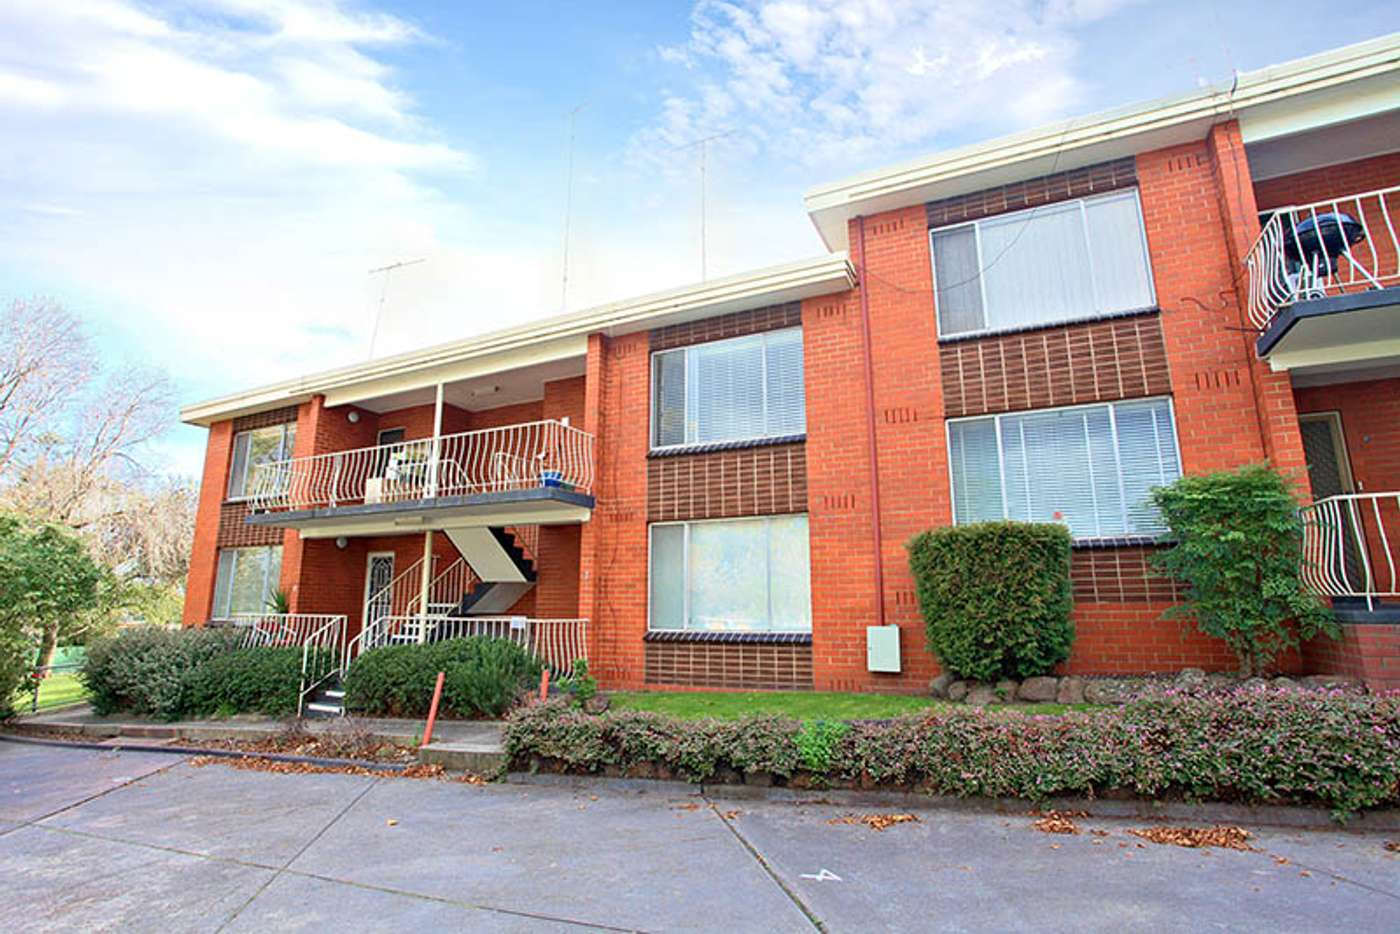 Main view of Homely apartment listing, 9/16 Passfield Street, Brunswick West VIC 3055